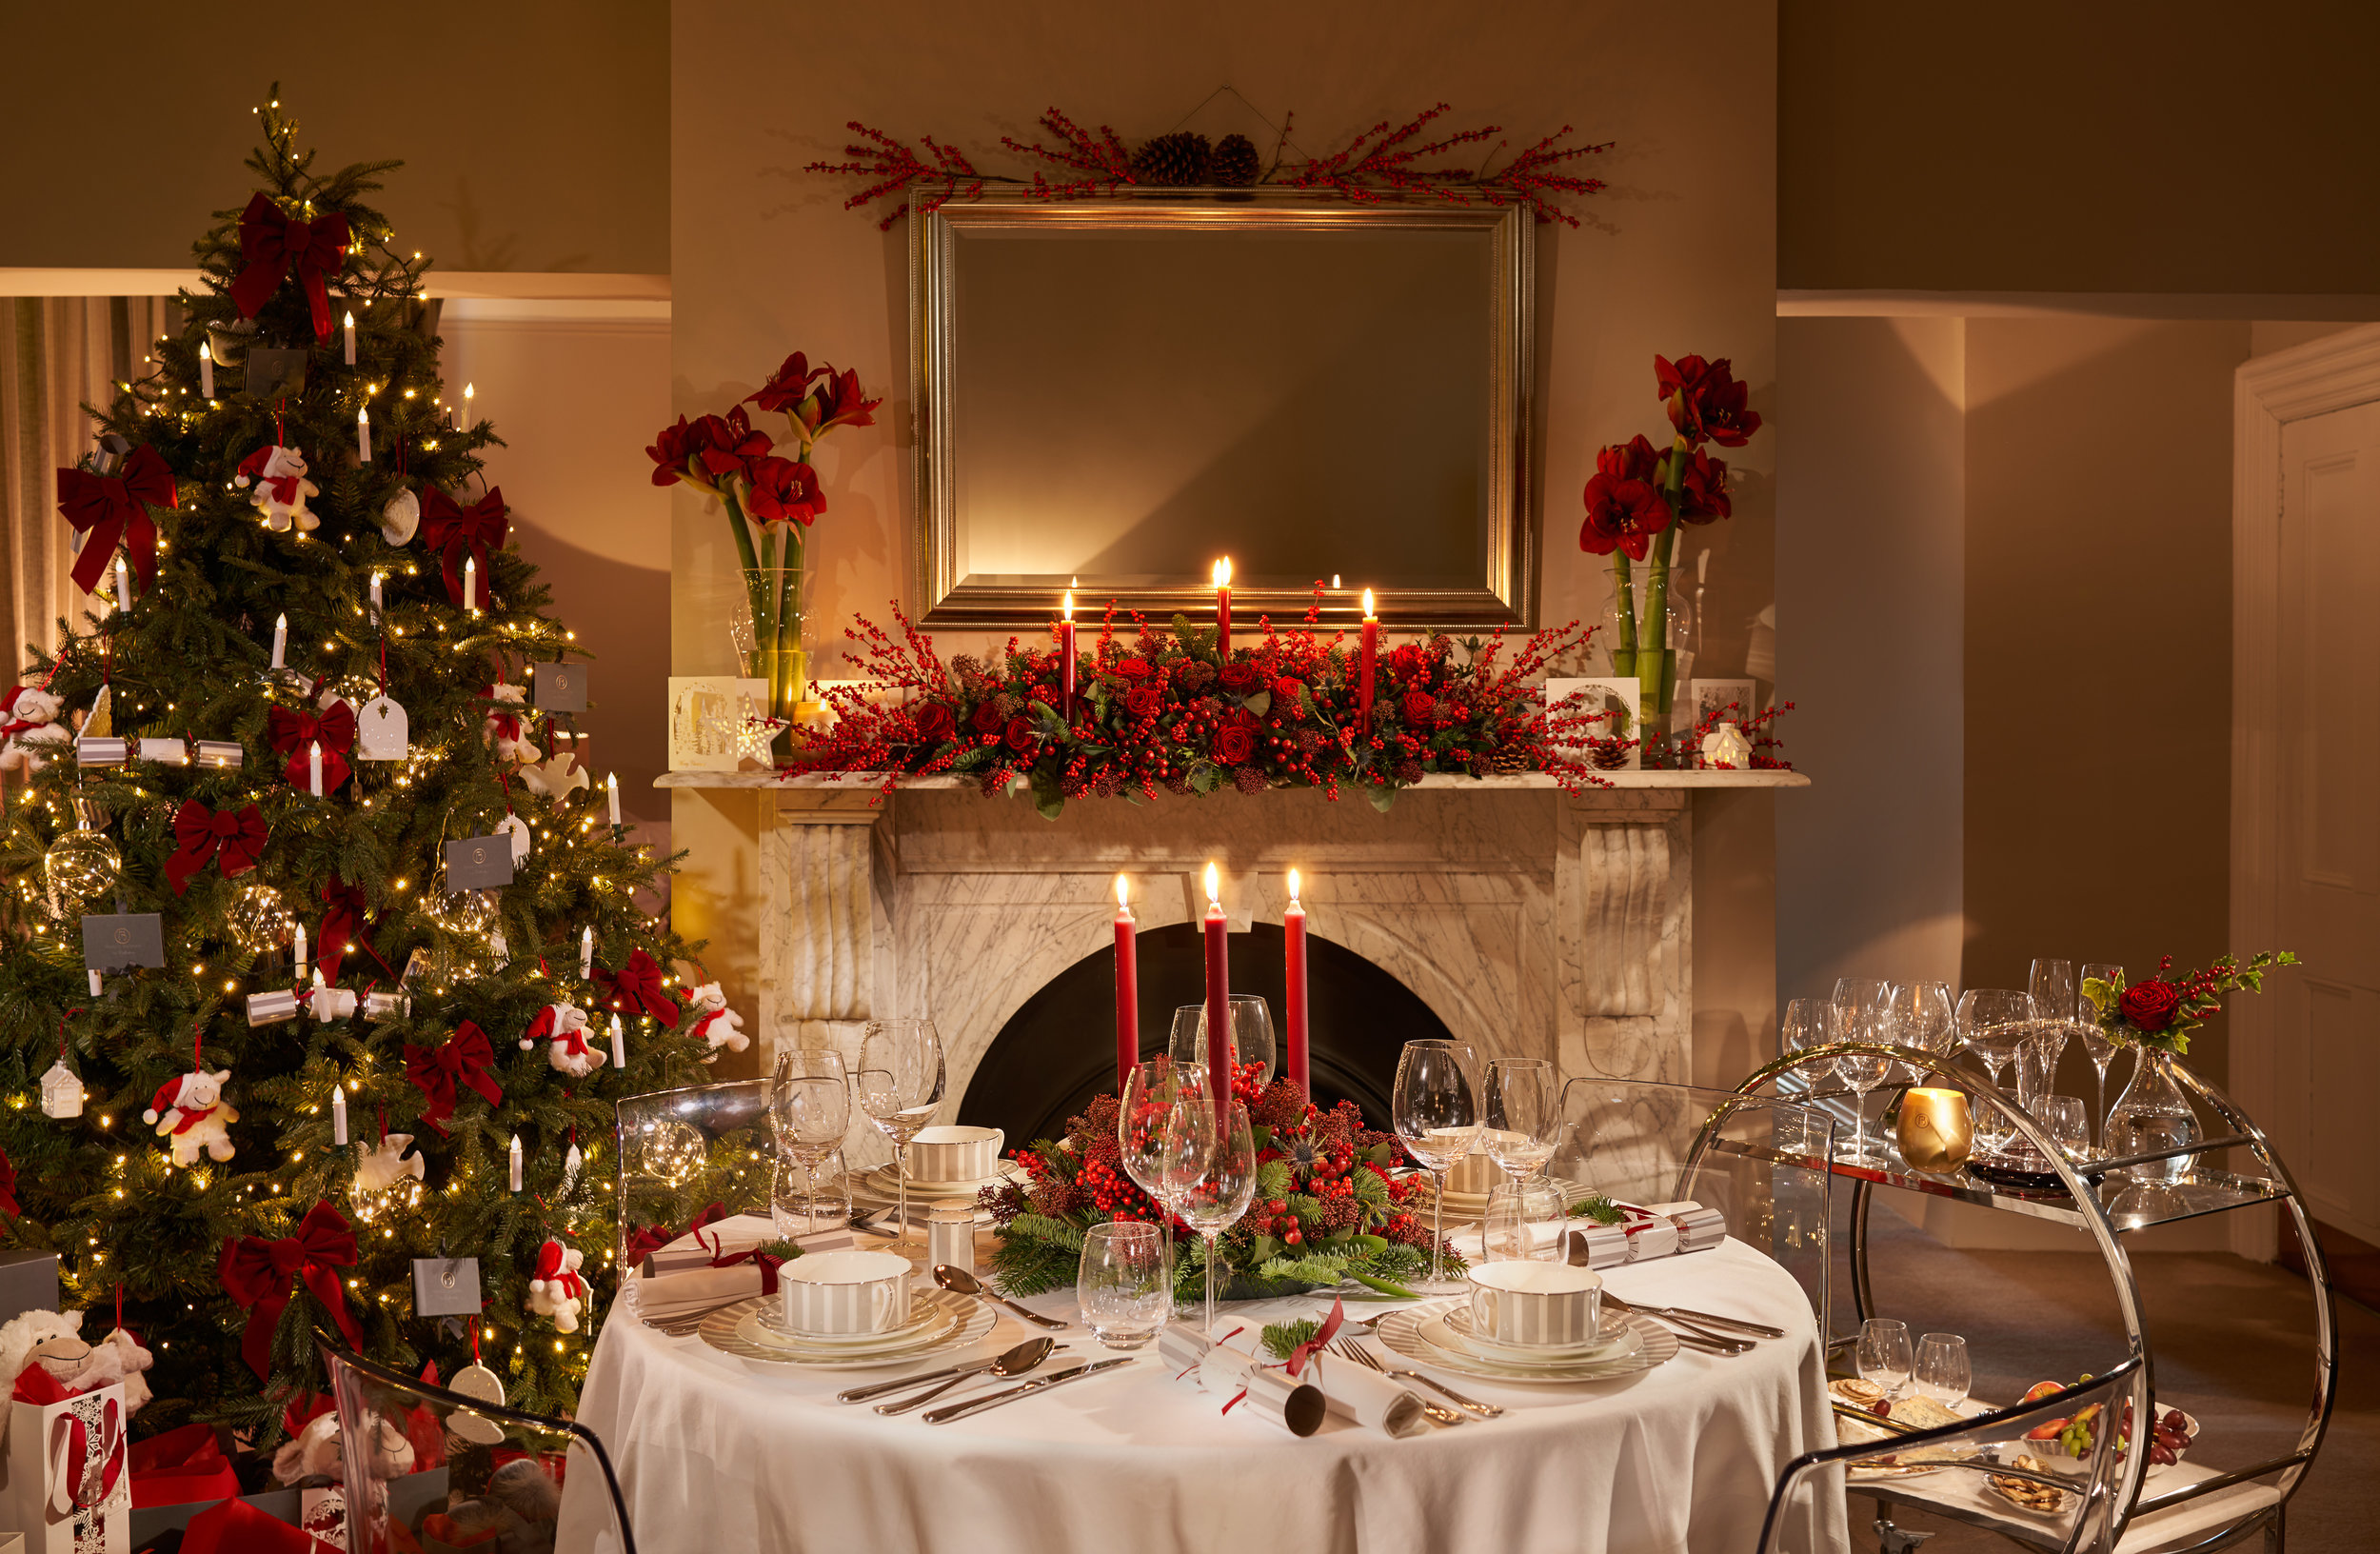 Dining Table Setting Red Candles 5000px.jpg